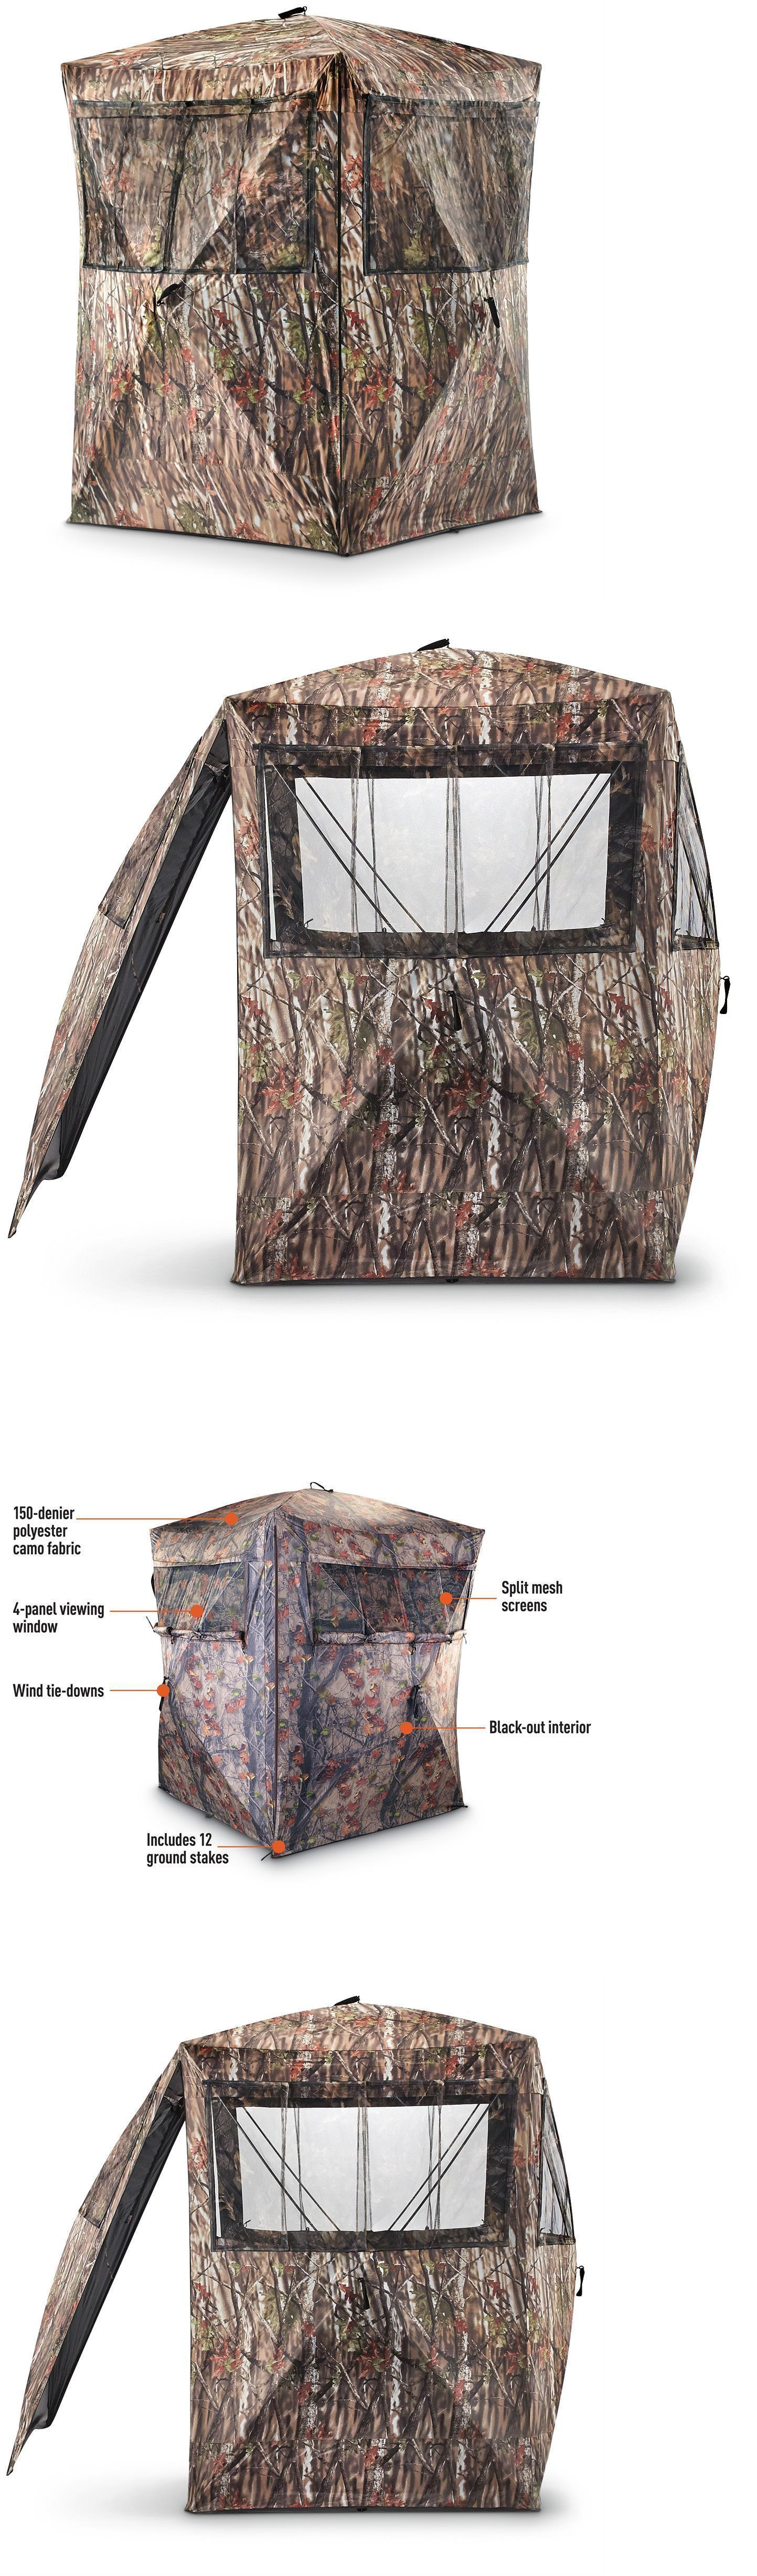 x big j country hunting for and deer box product blinds blind l bow sales sale service